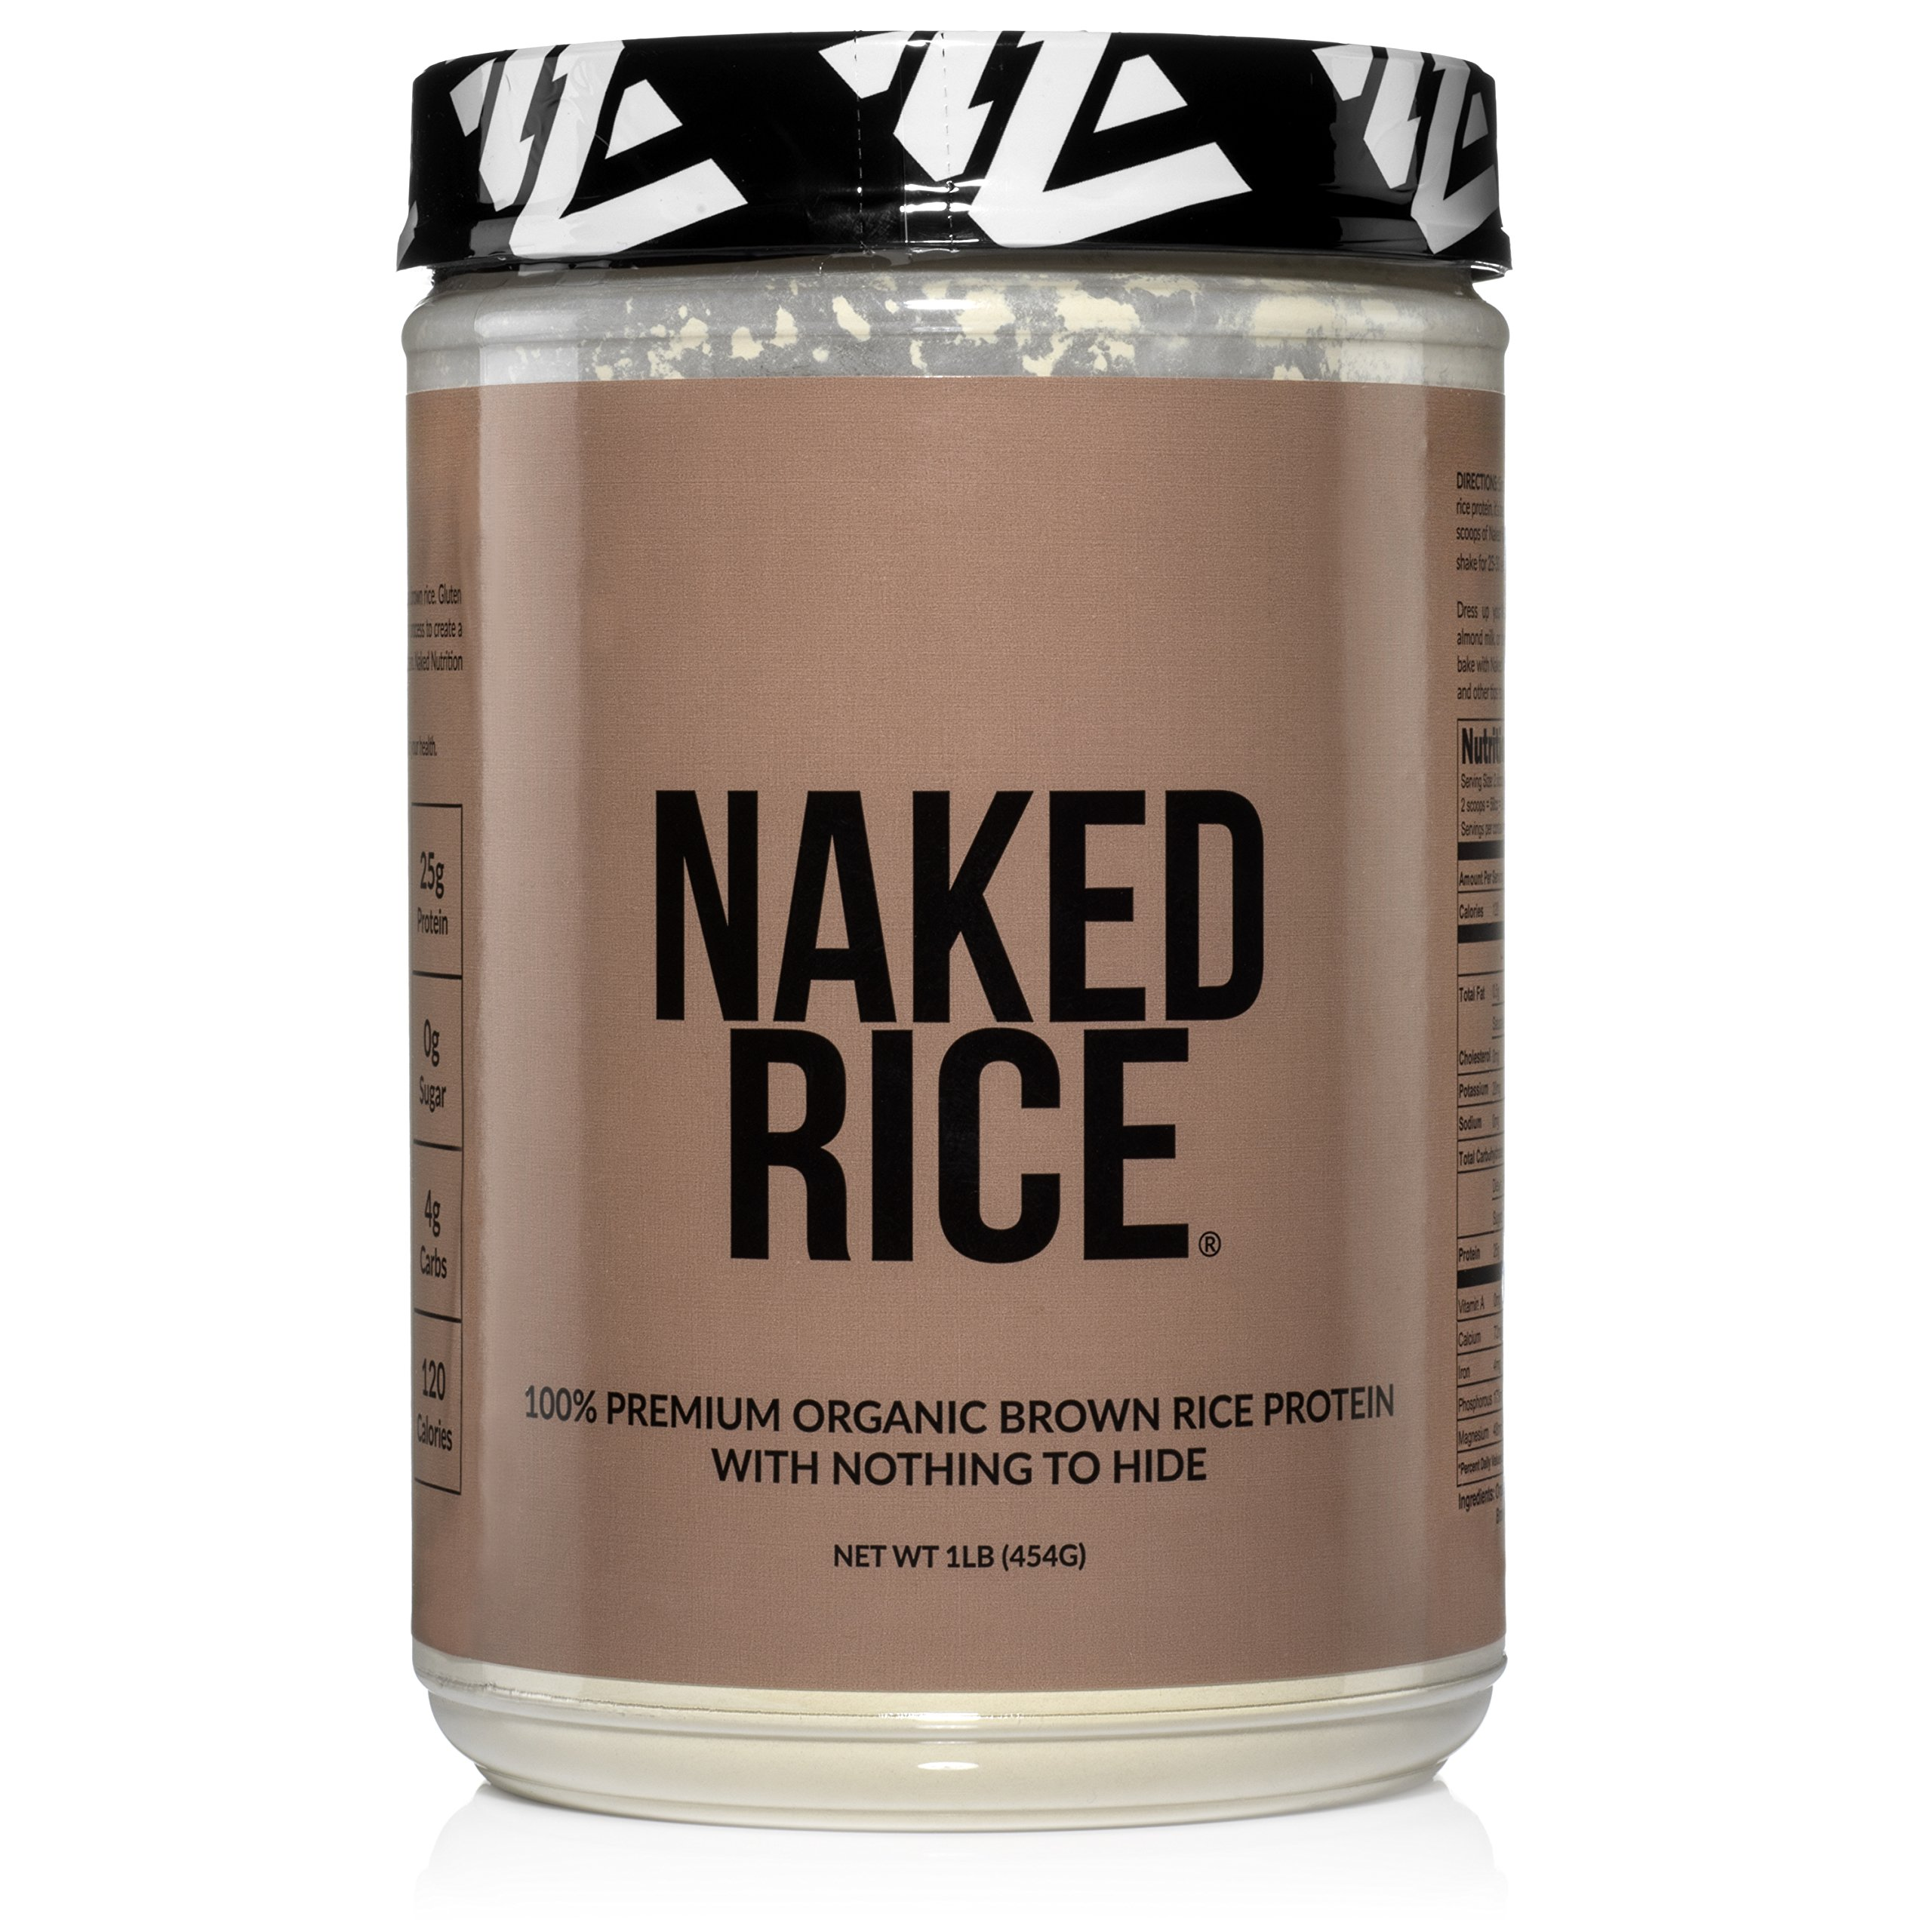 Naked Rice 1LB - Organic Brown Rice Protein Powder - Vegan Protein Powder - 5lb Bulk, GMO Free, Gluten Free & Soy Free. Plant-Based Protein, No Artificial Ingredients - 15 Servings by NAKED nutrition